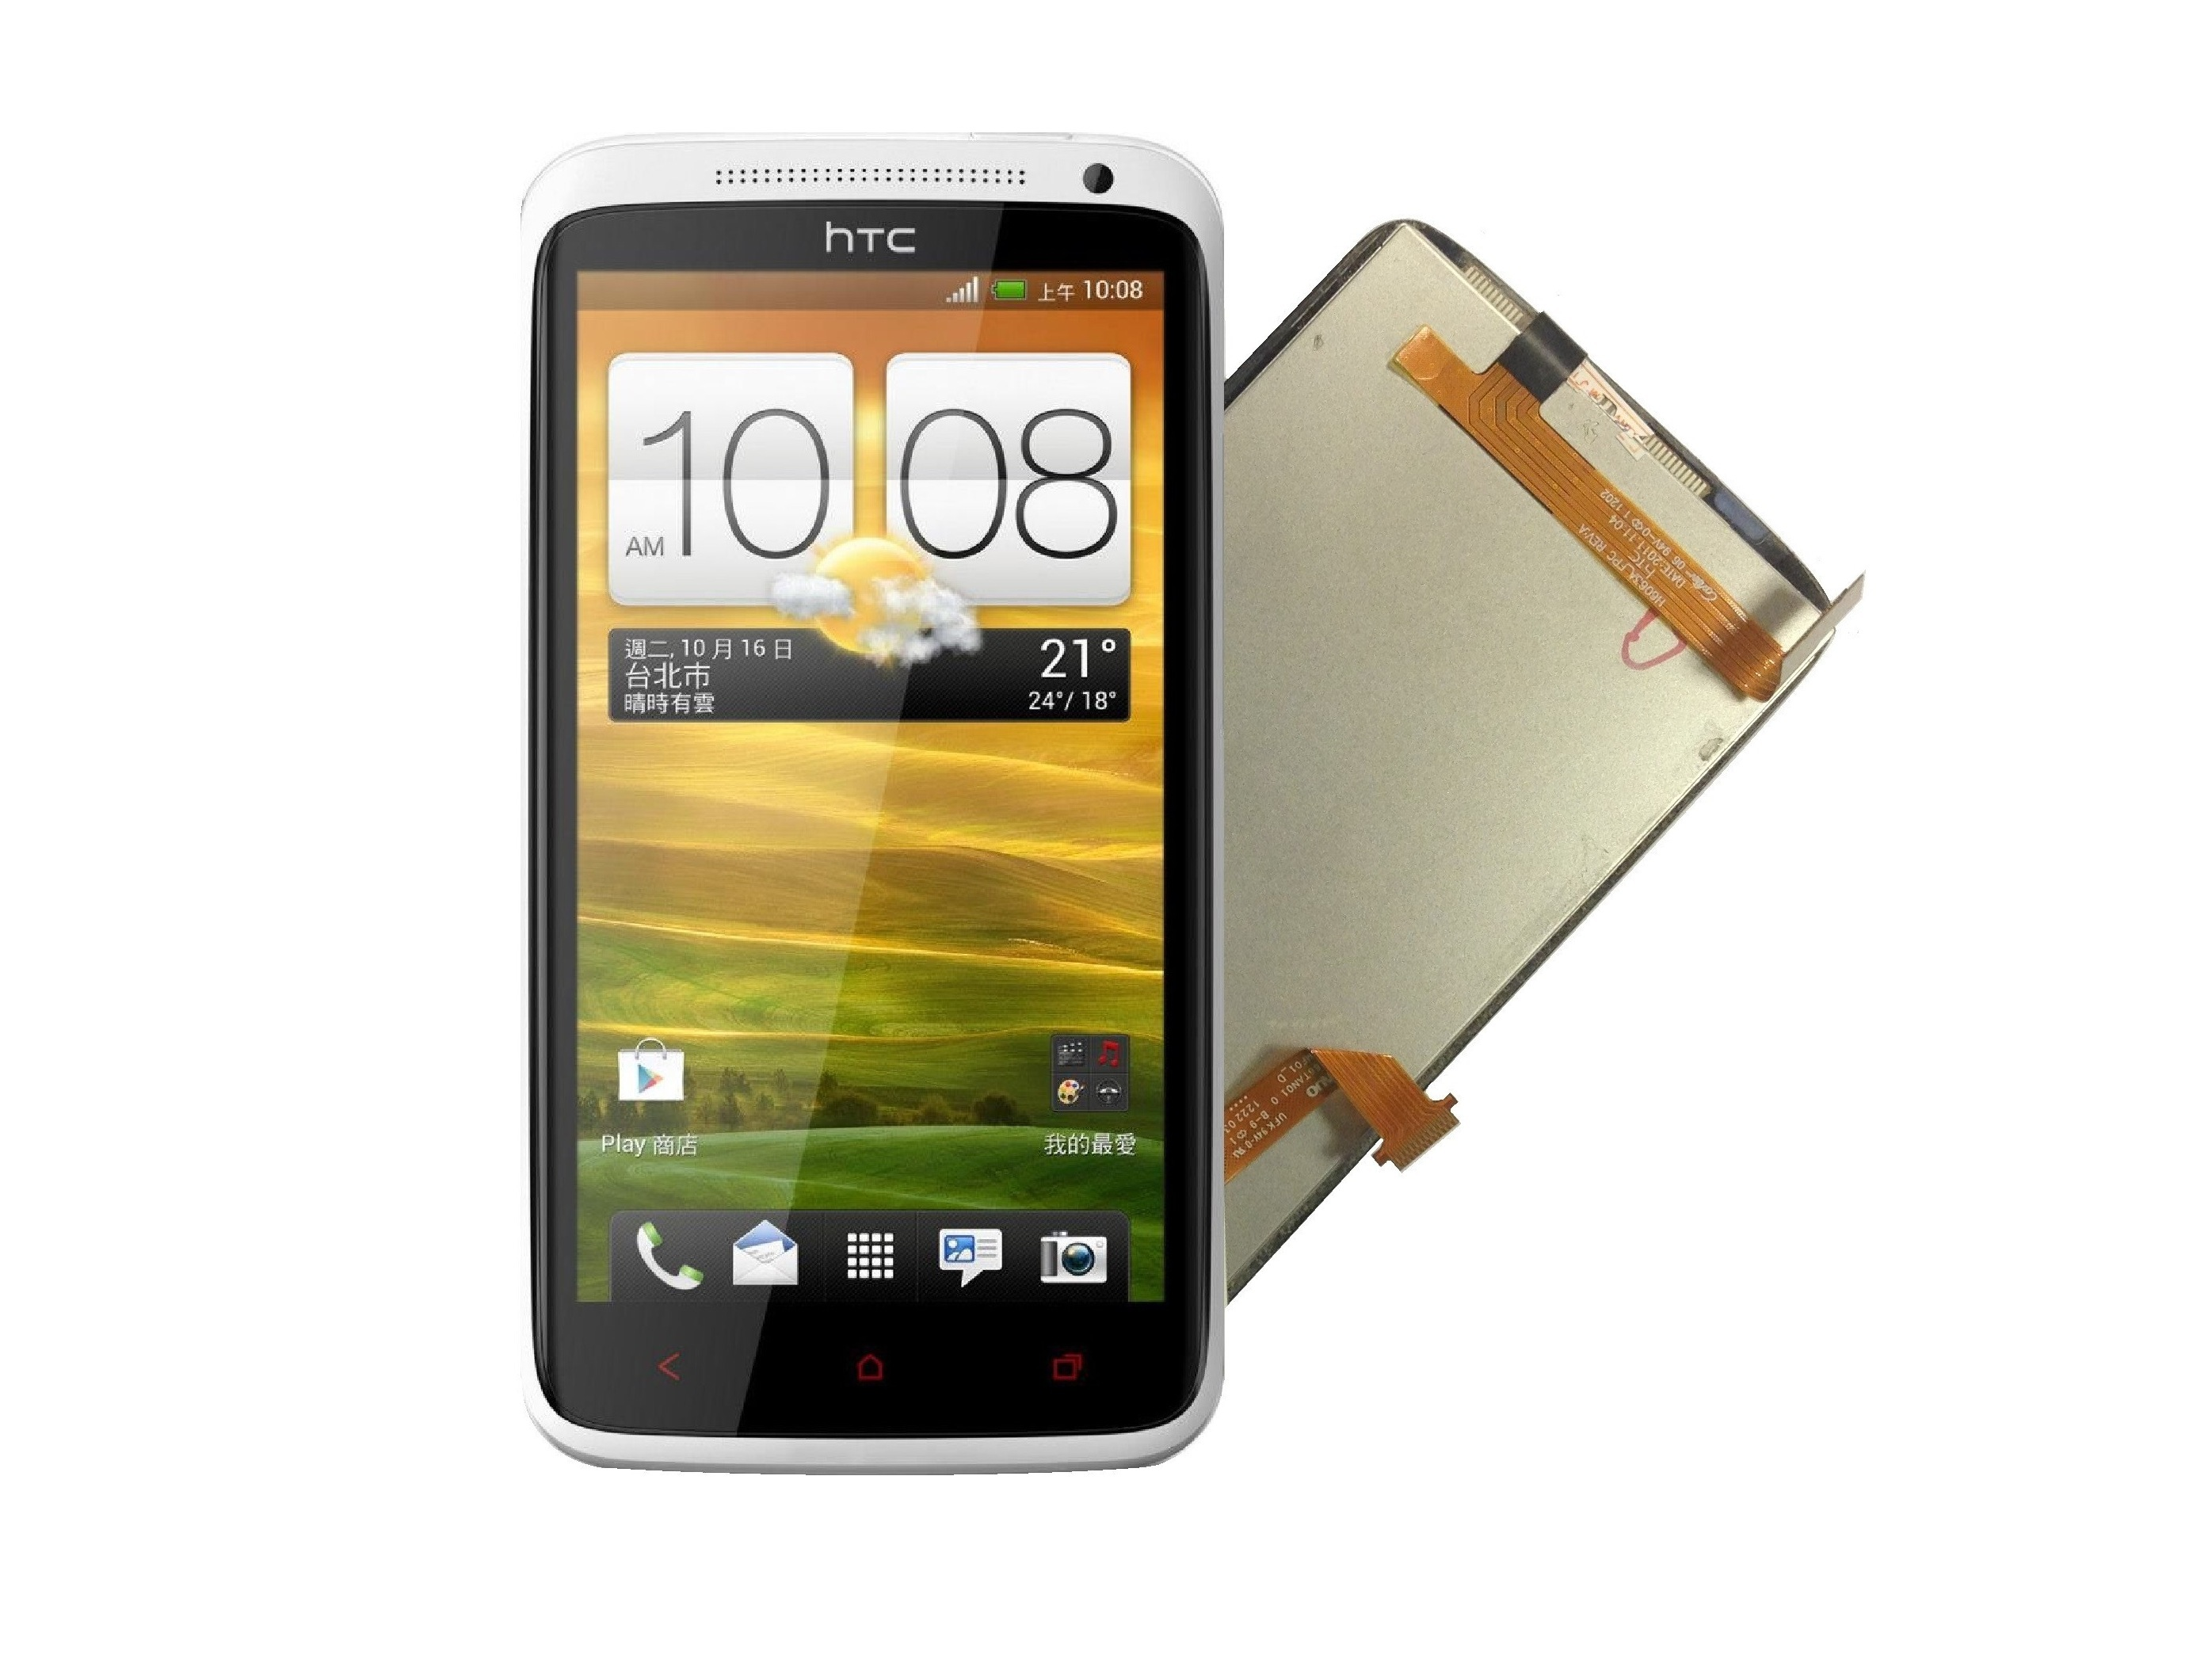 htc liberty phone manual how to troubleshooting manual guide book u2022 rh samnet co HTC Mobile Phones HTC Android Phone